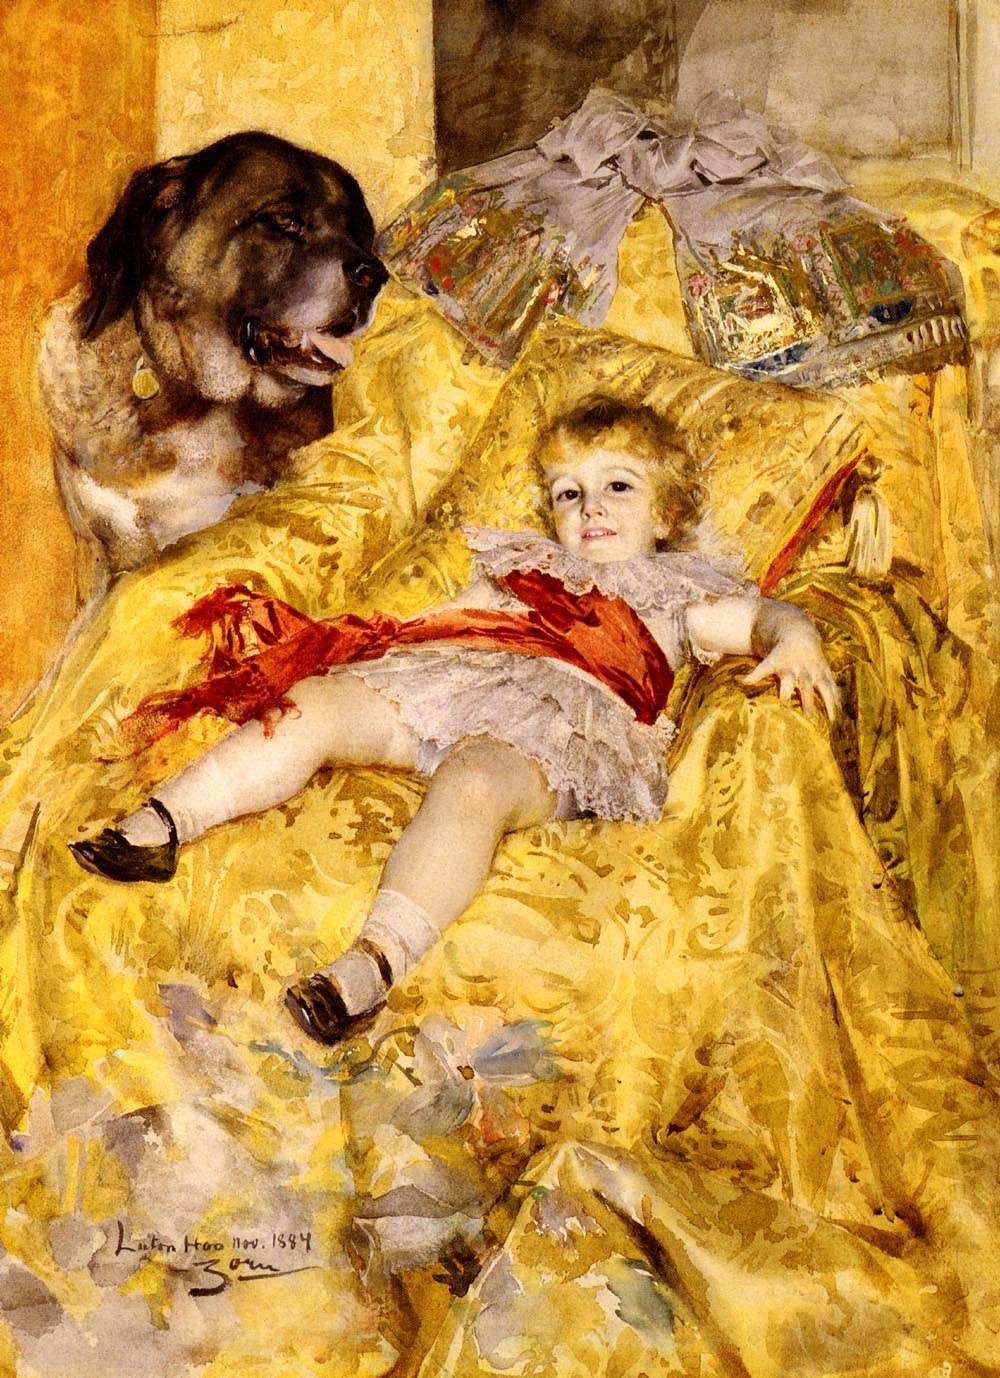 Anders Zorn. A girl with a dog